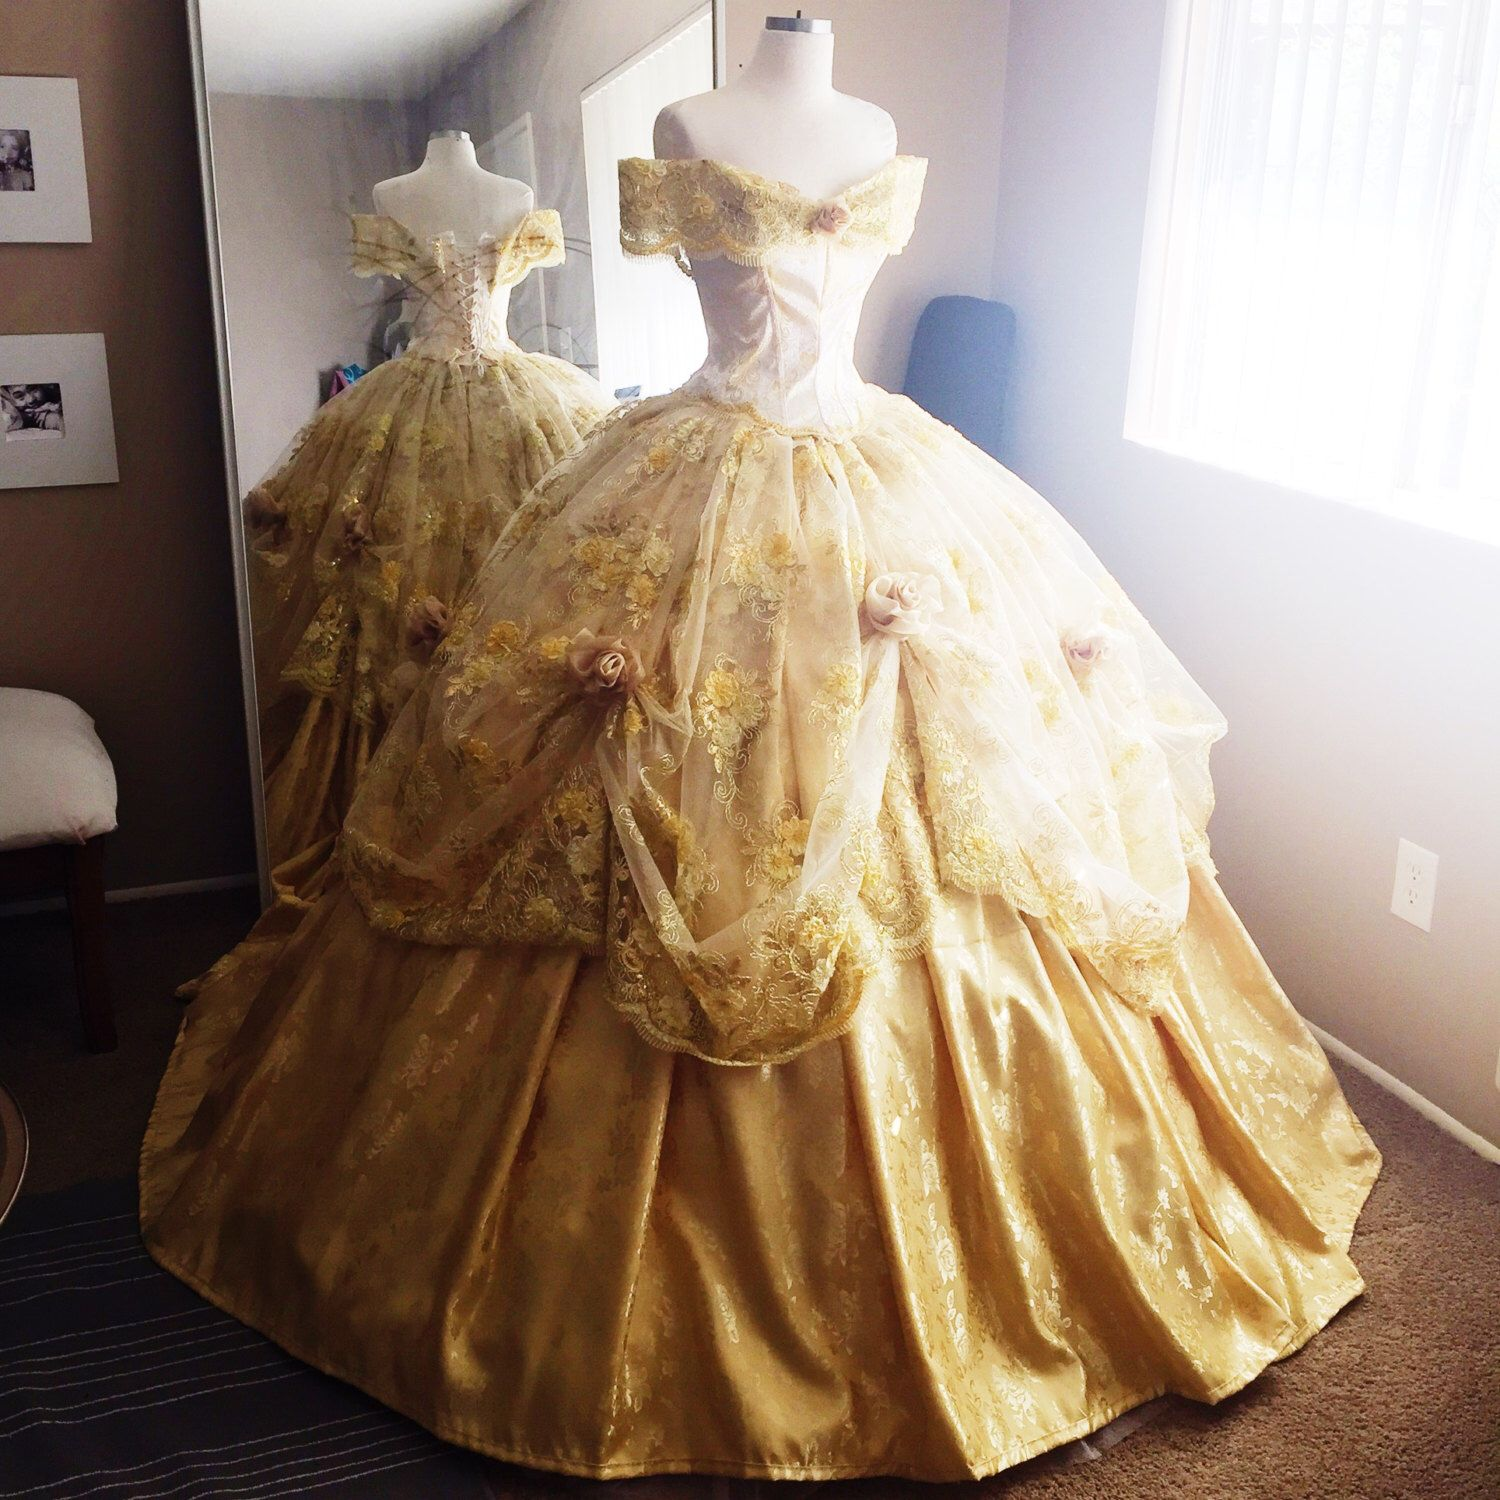 32a6bd8ed3a Disney Inspired Deluxe Belle Ball Gown from Beauty and the Beast by  LittleBrightDress on Etsy https